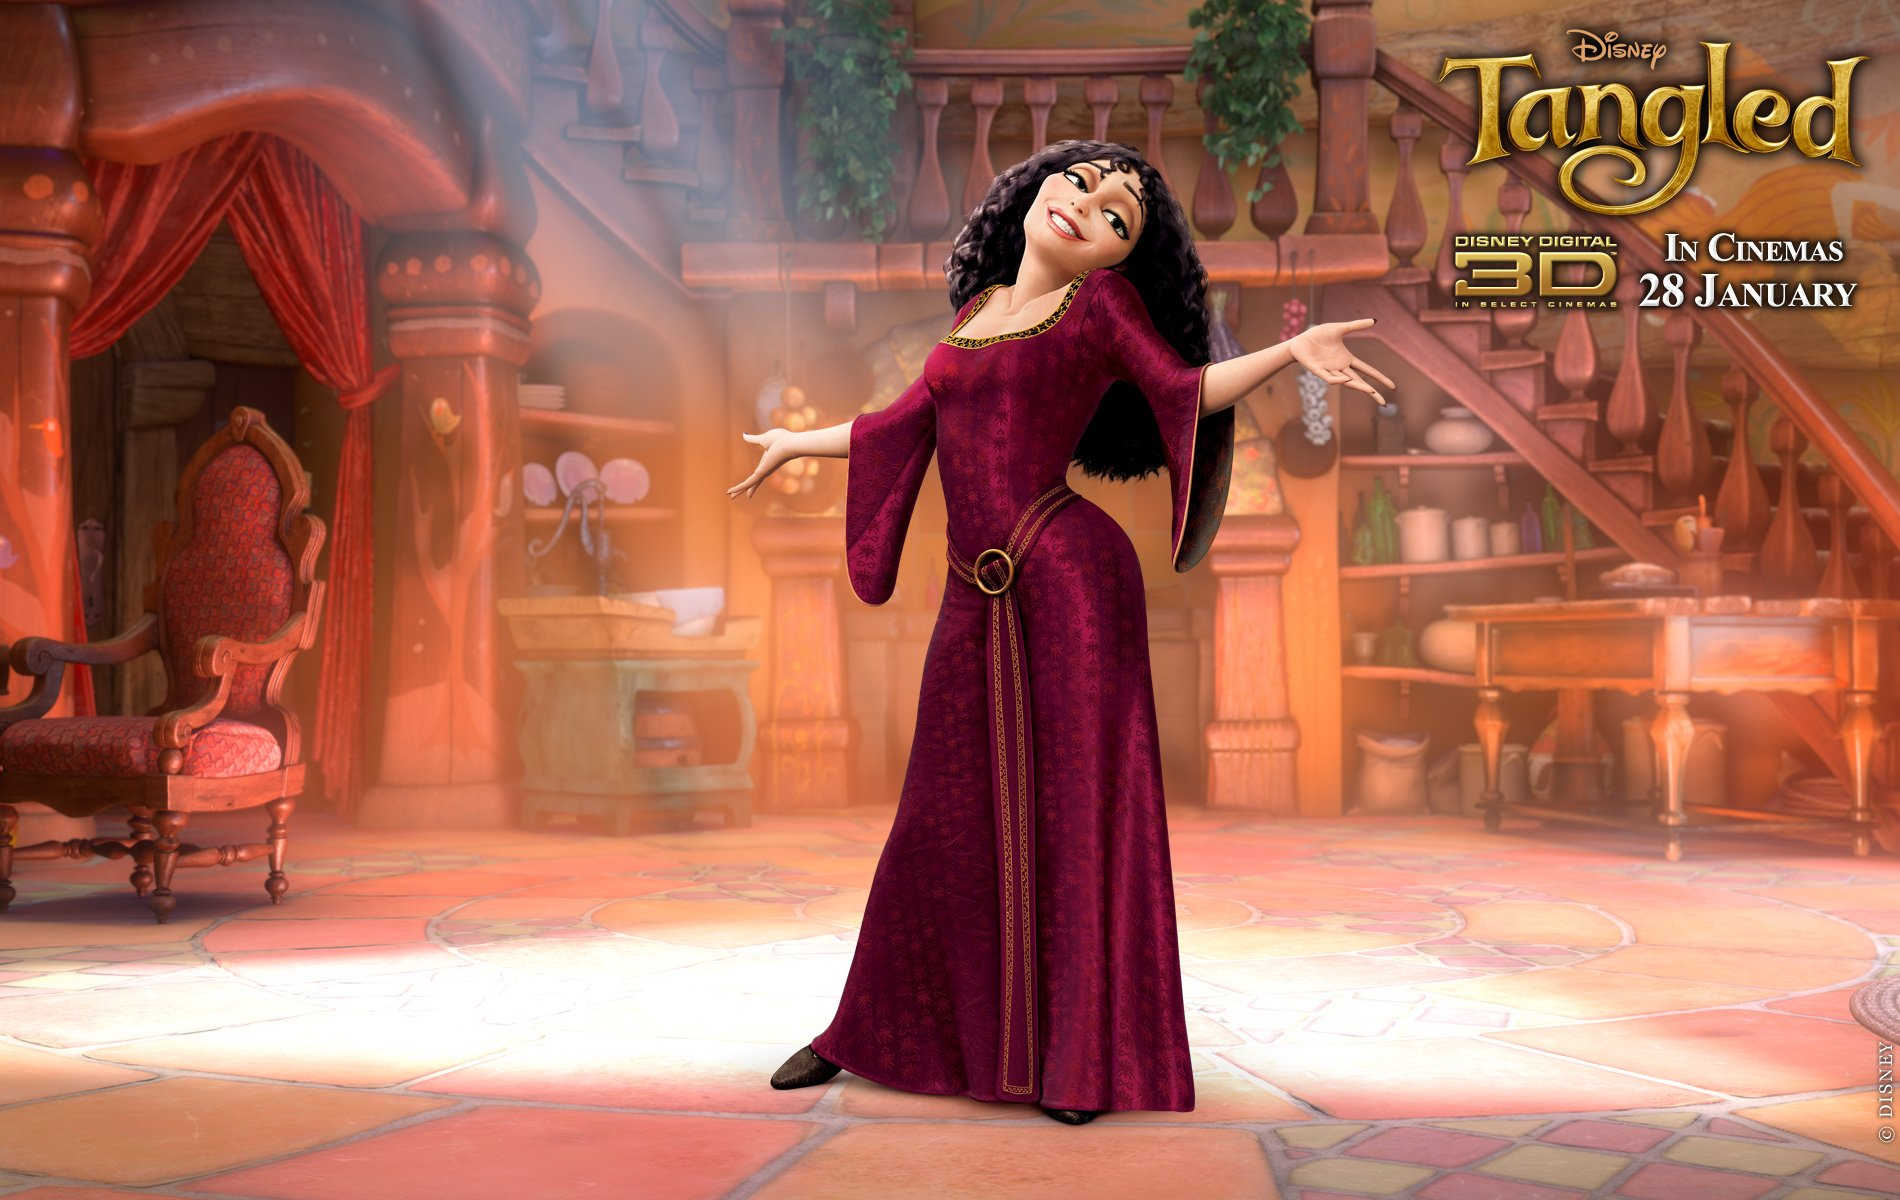 mother-gothel-Disney-Tangled-Wallpaper.jpg